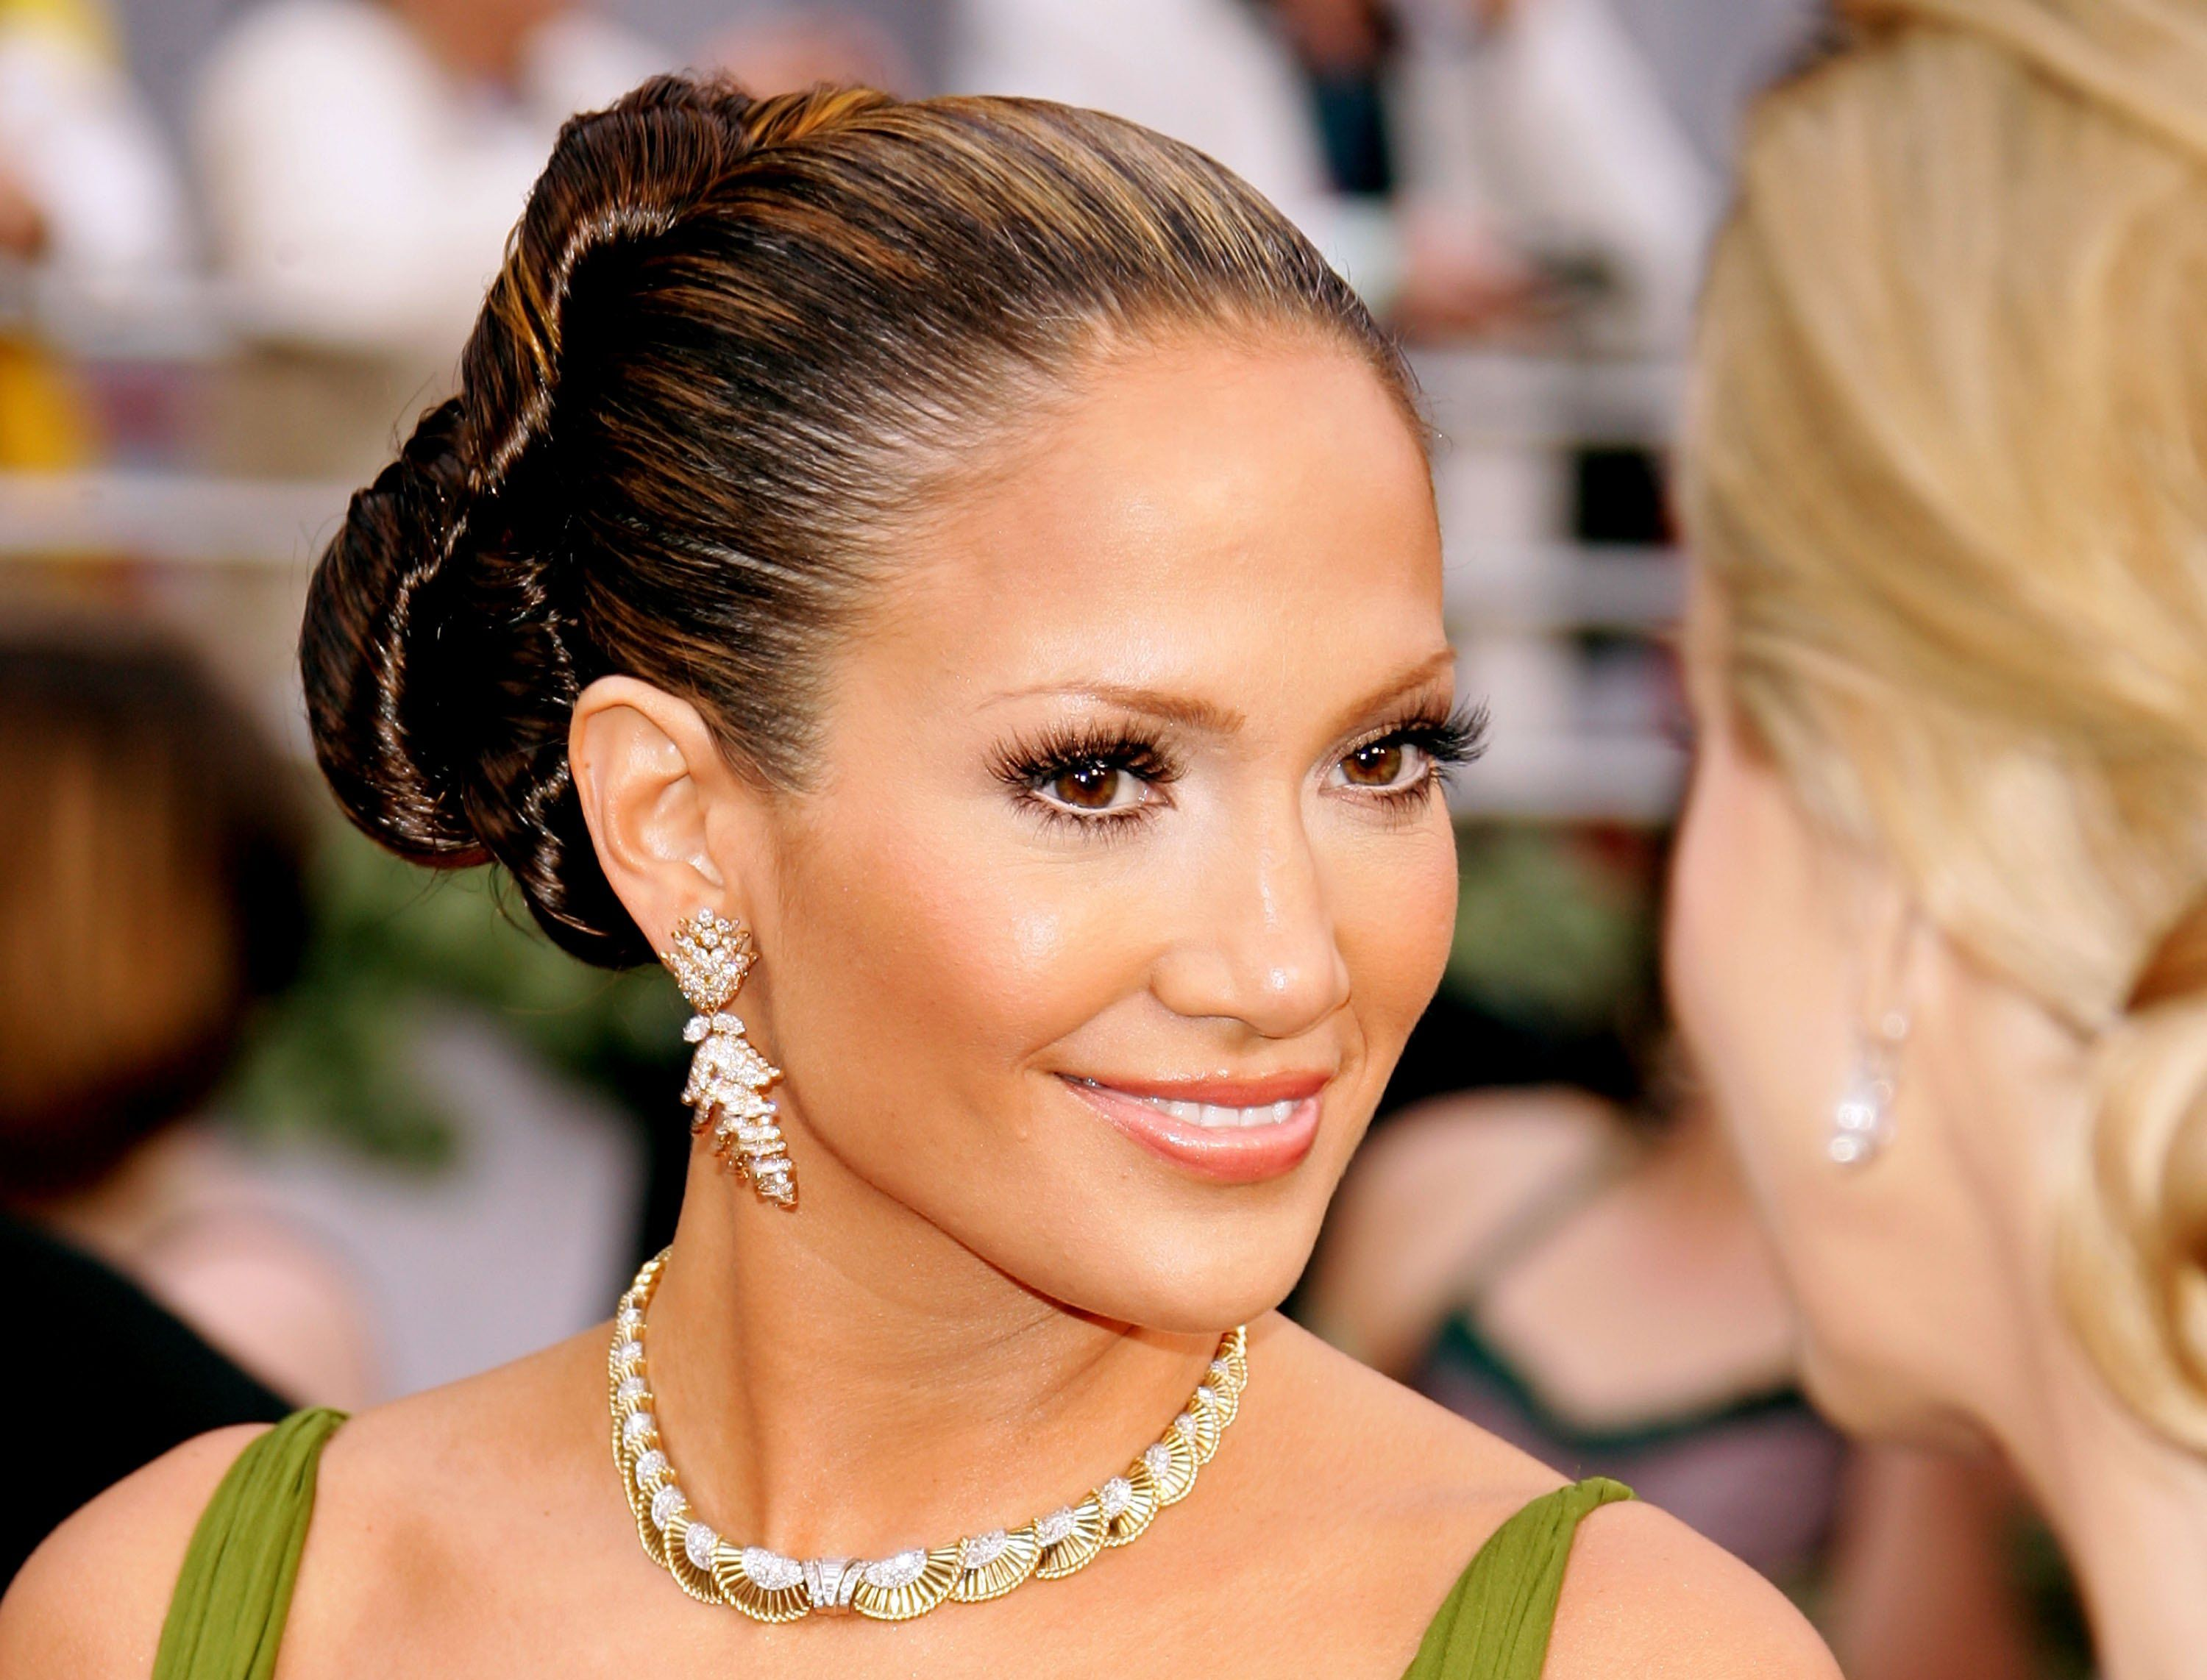 Jennifer Lopez at the 78th Annual Academy Awards on March 5, 2006, in Hollywood, California | Photo: Frazer Harrison/Getty Images